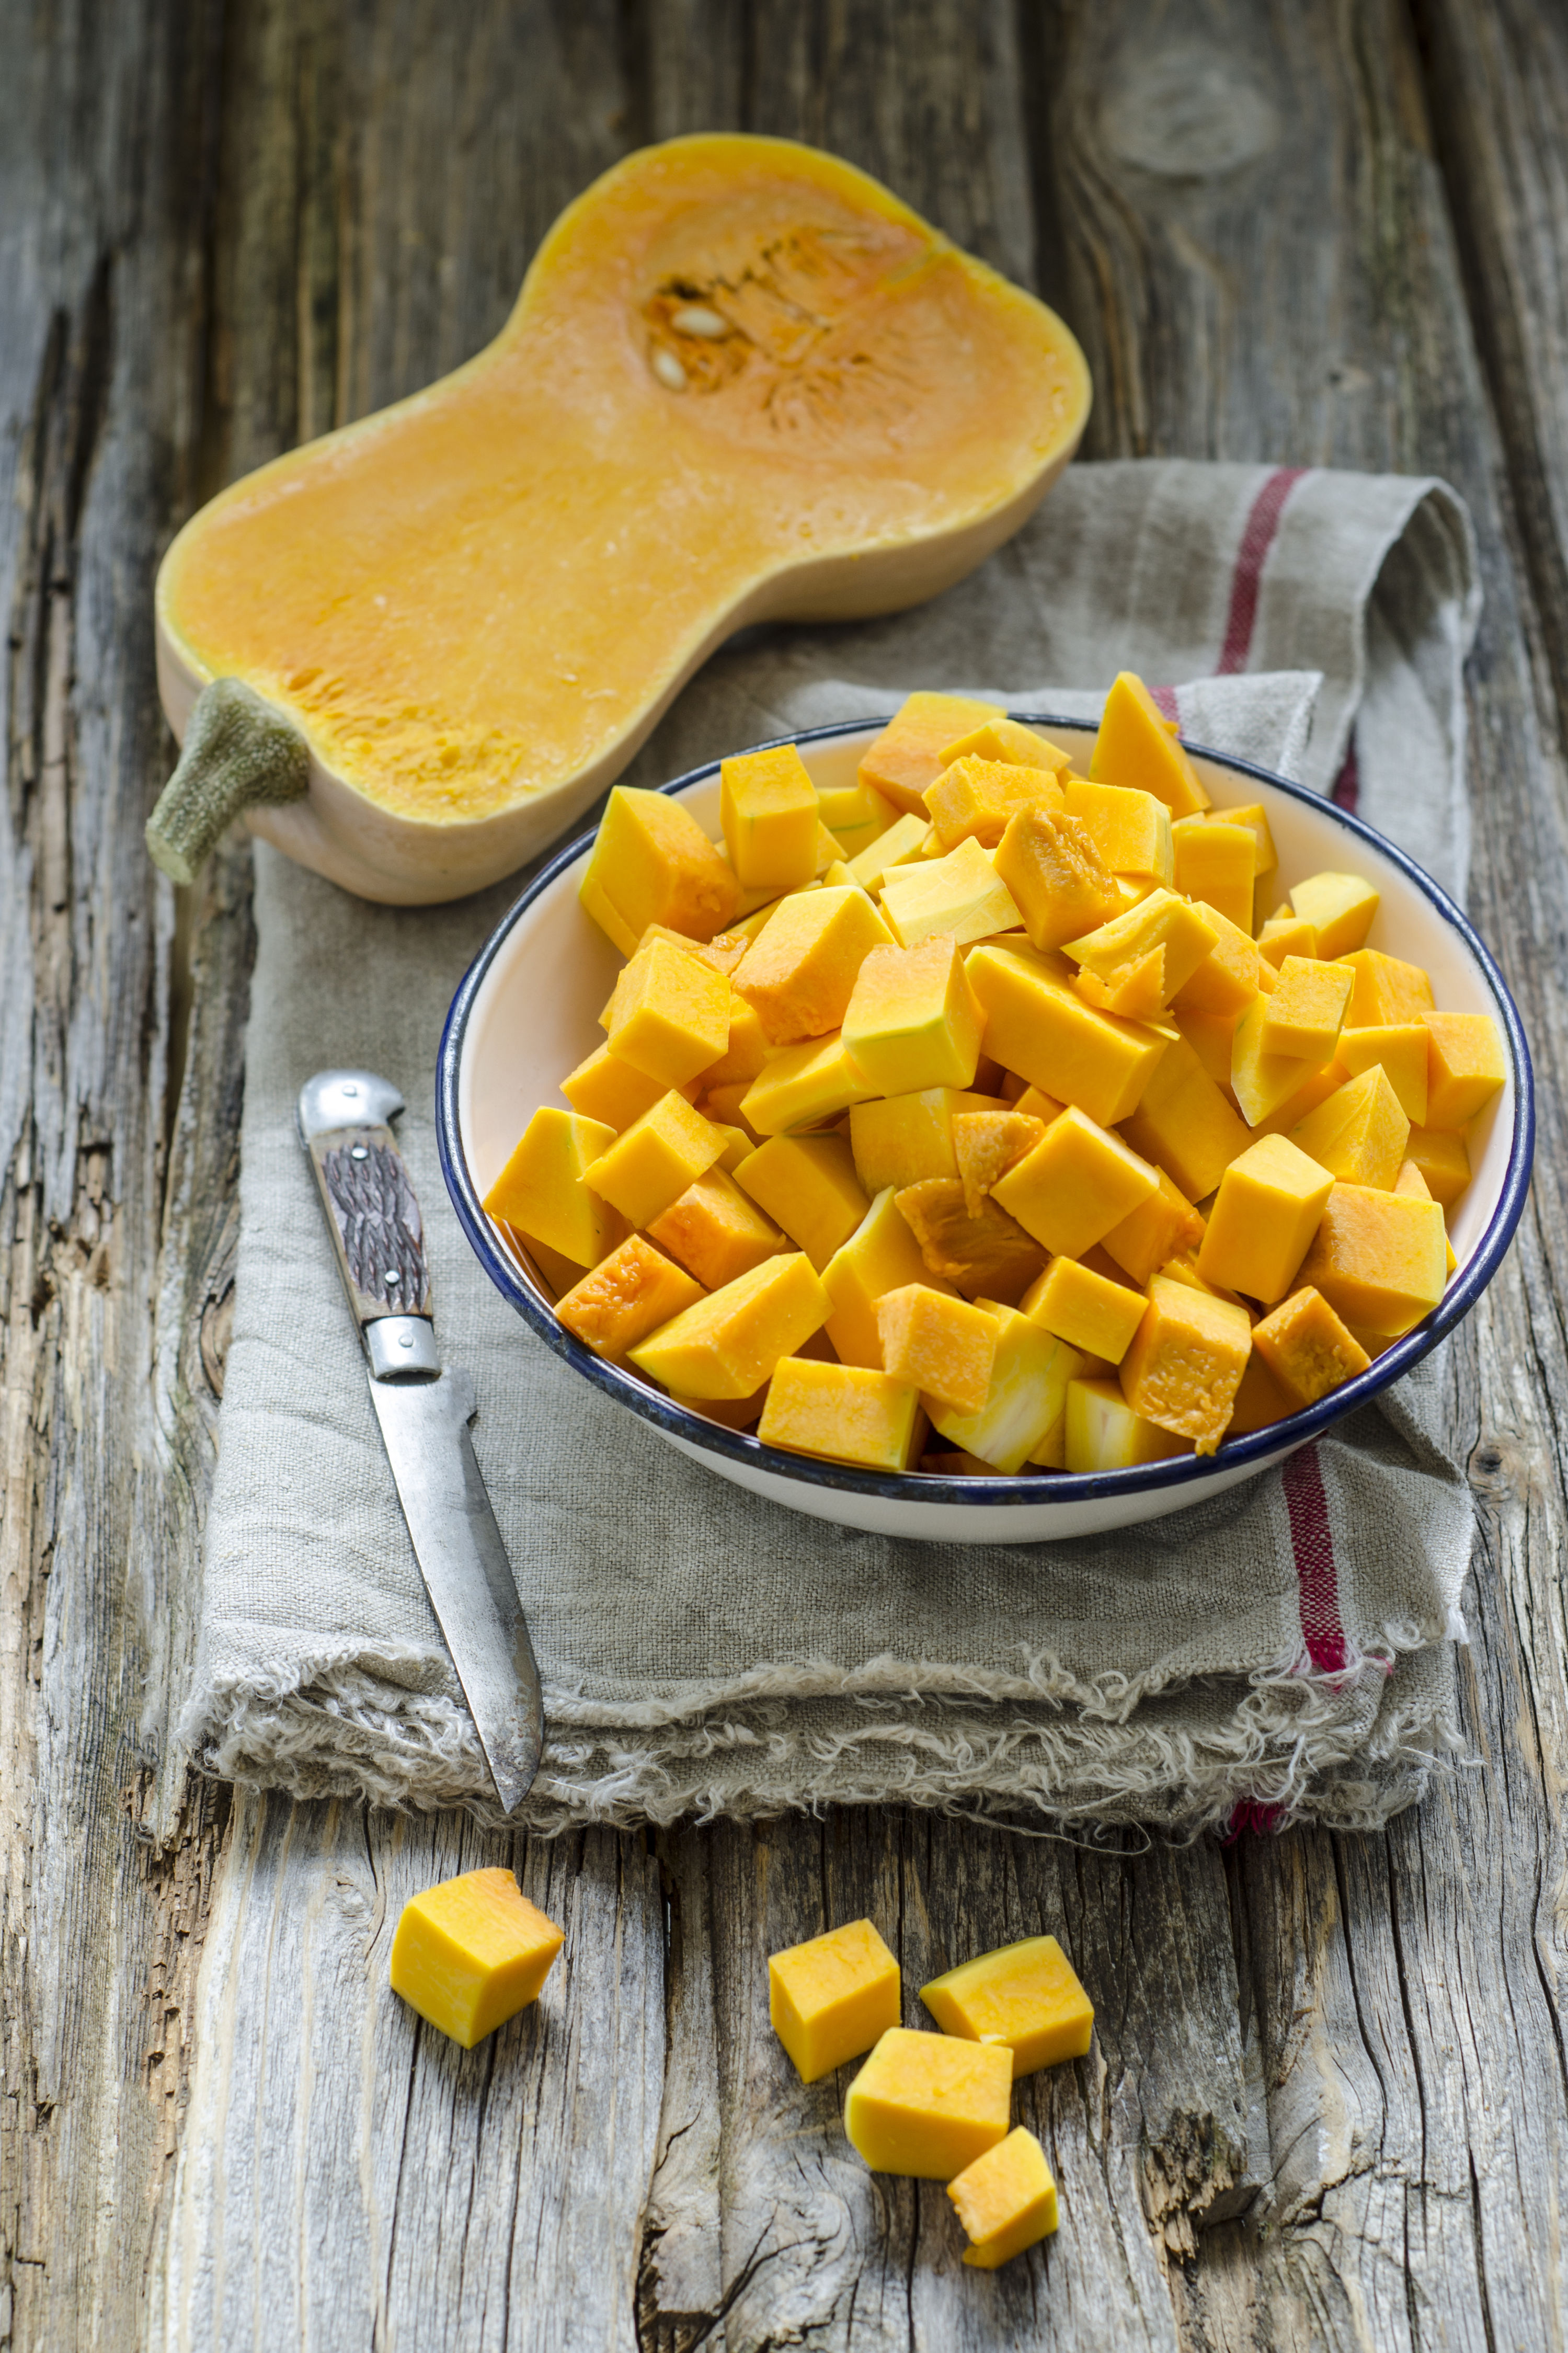 WATCH: Does Peeling Butternut Squash Make Your Hands Feel Weird? Here's Why.